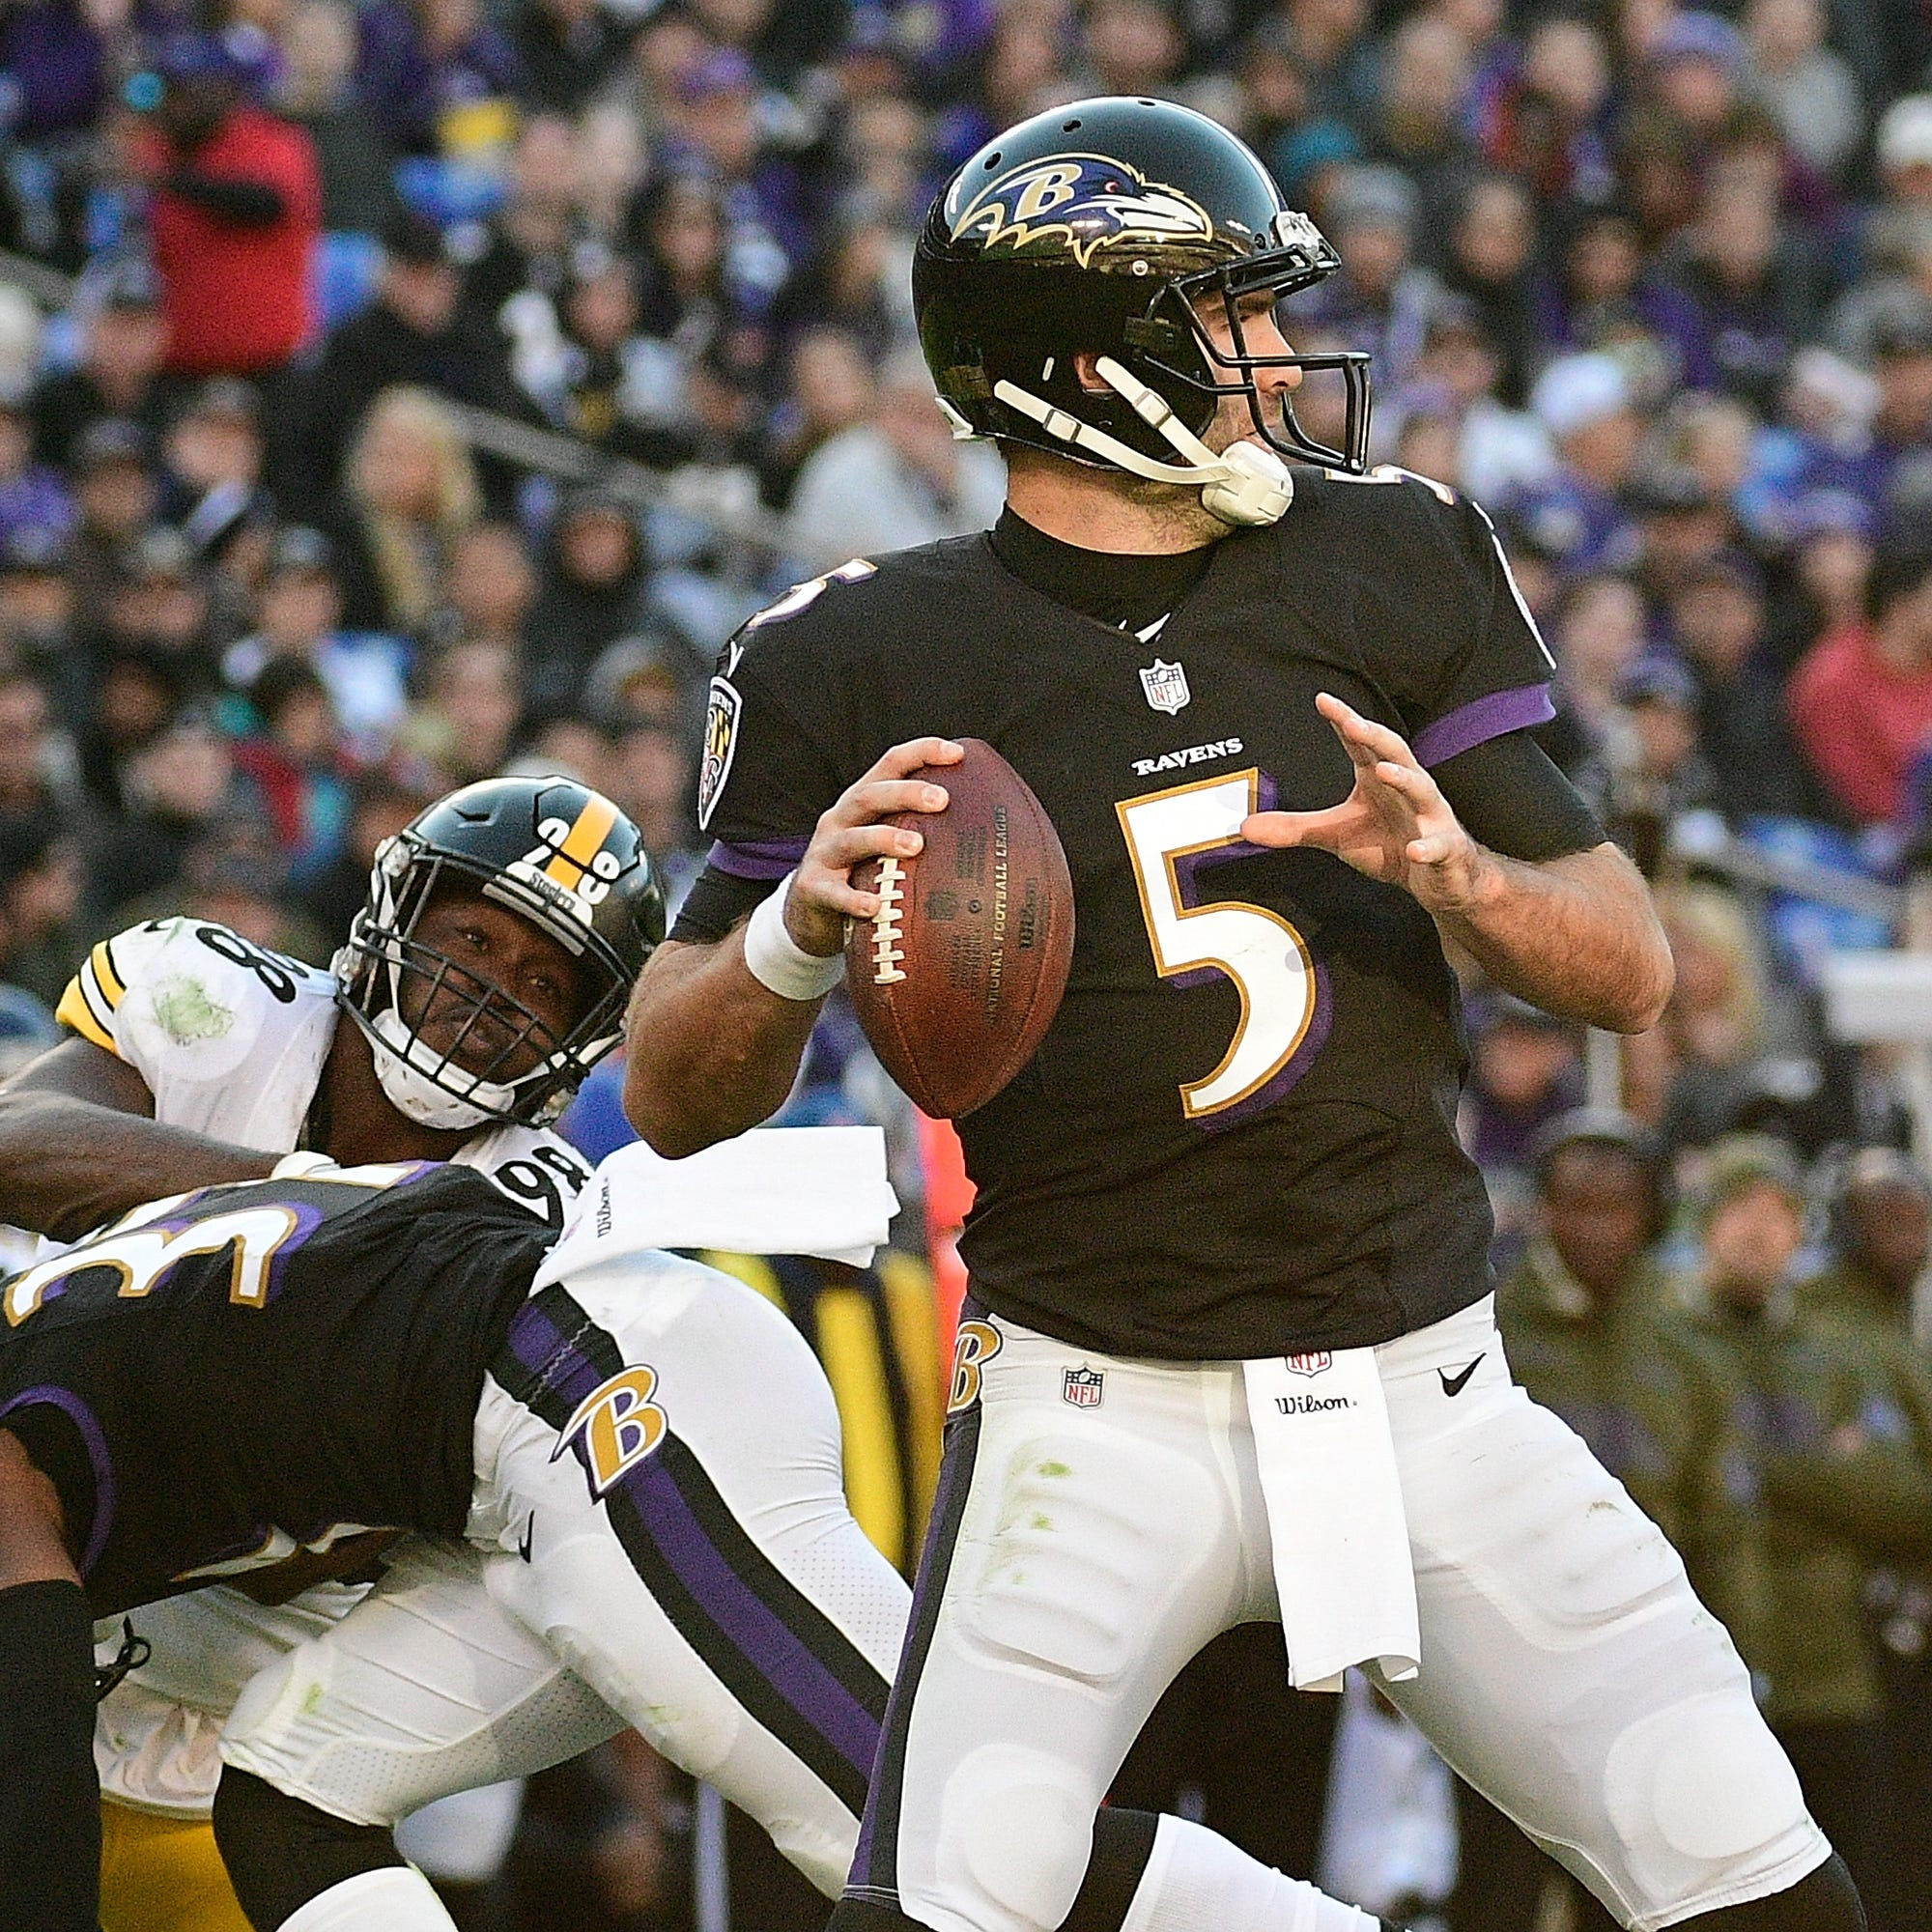 Denver Broncos agree to trade for former Super Bowl MVP quarterback Joe Flacco from Ravens